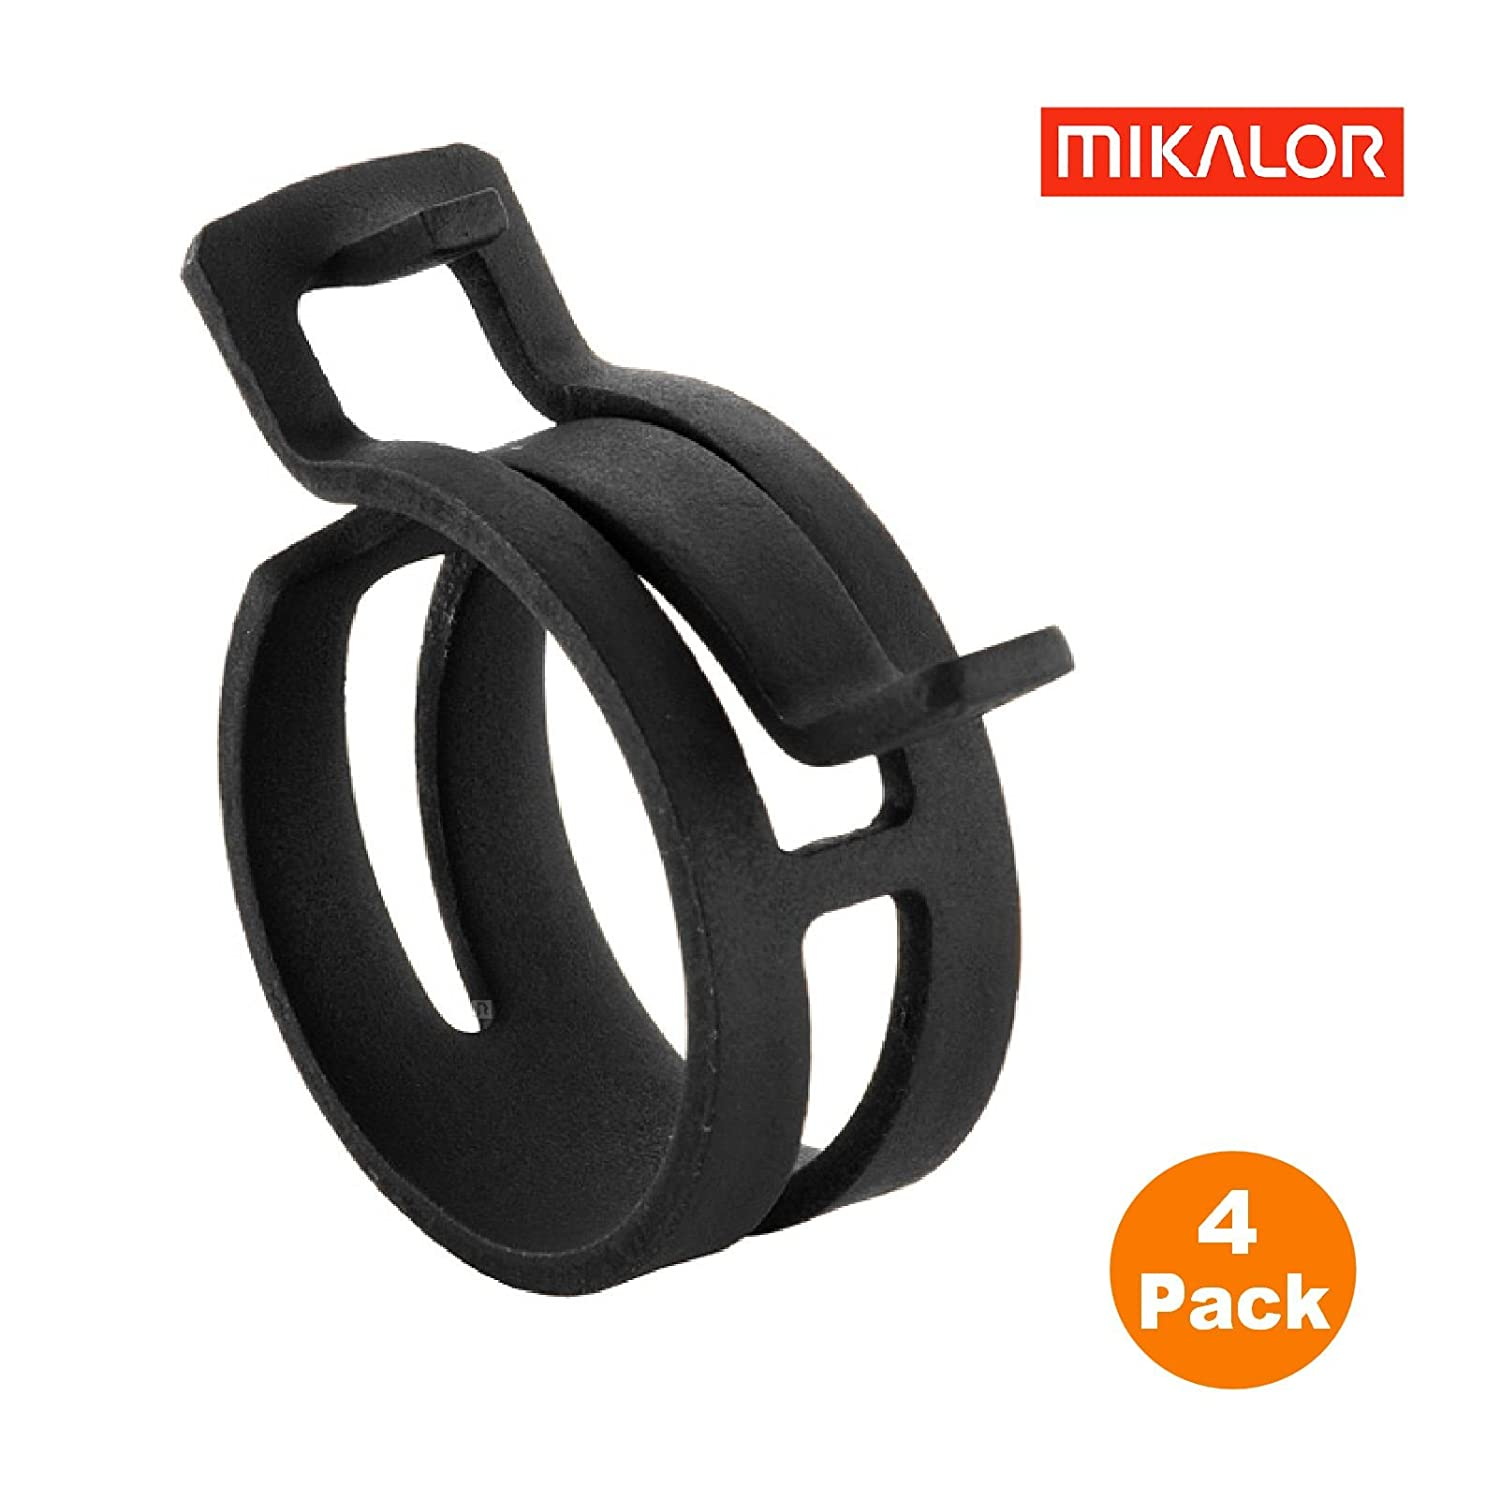 4 x 23mm Mikalor W1 Heavy Duty Spring Band Clip Radiator Pipe Air Oil Fuel DIN 3021